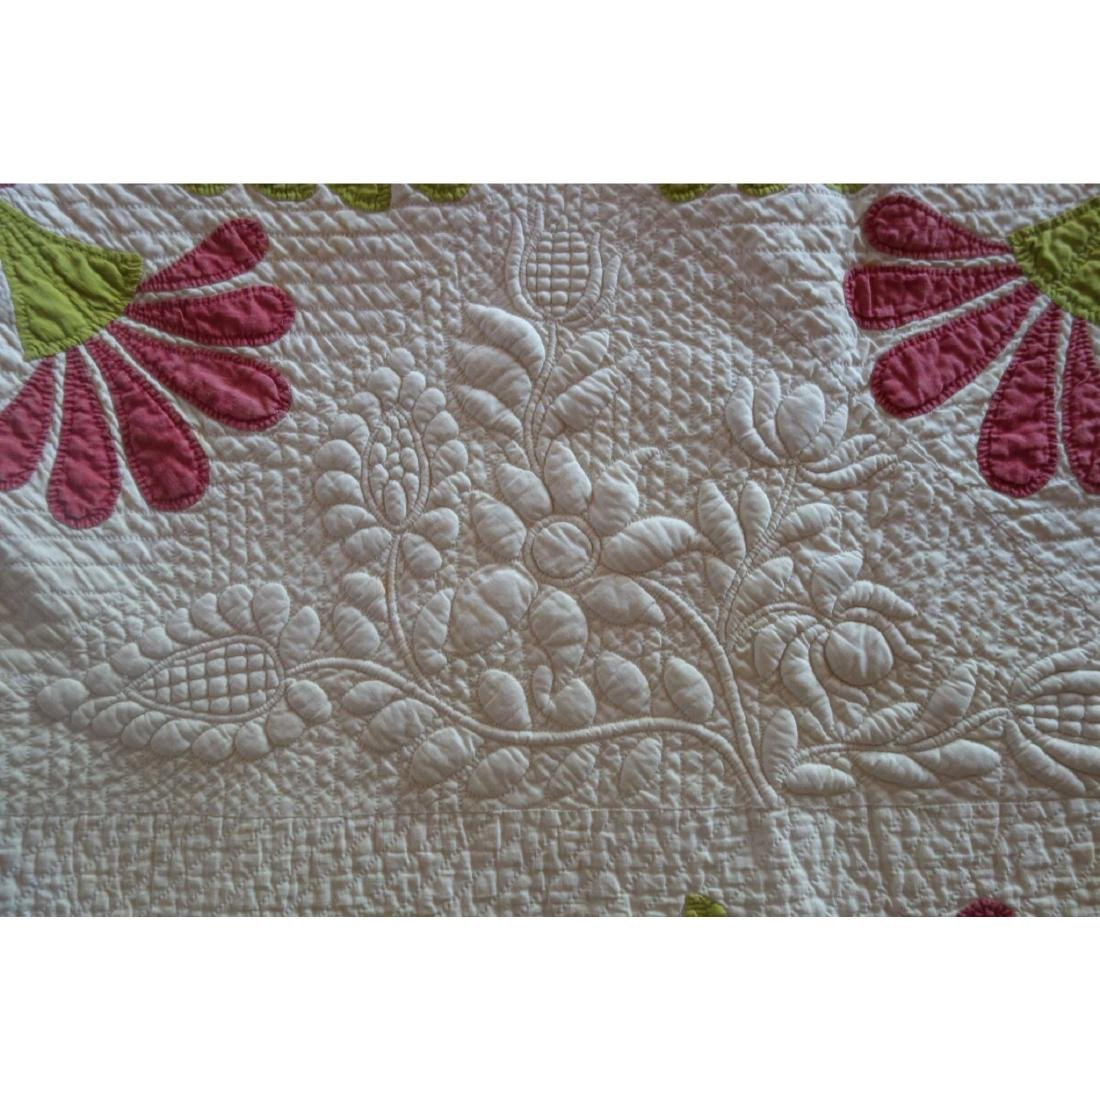 Trapunto Applique Quilt Exquisite Initialed 1800's - 3